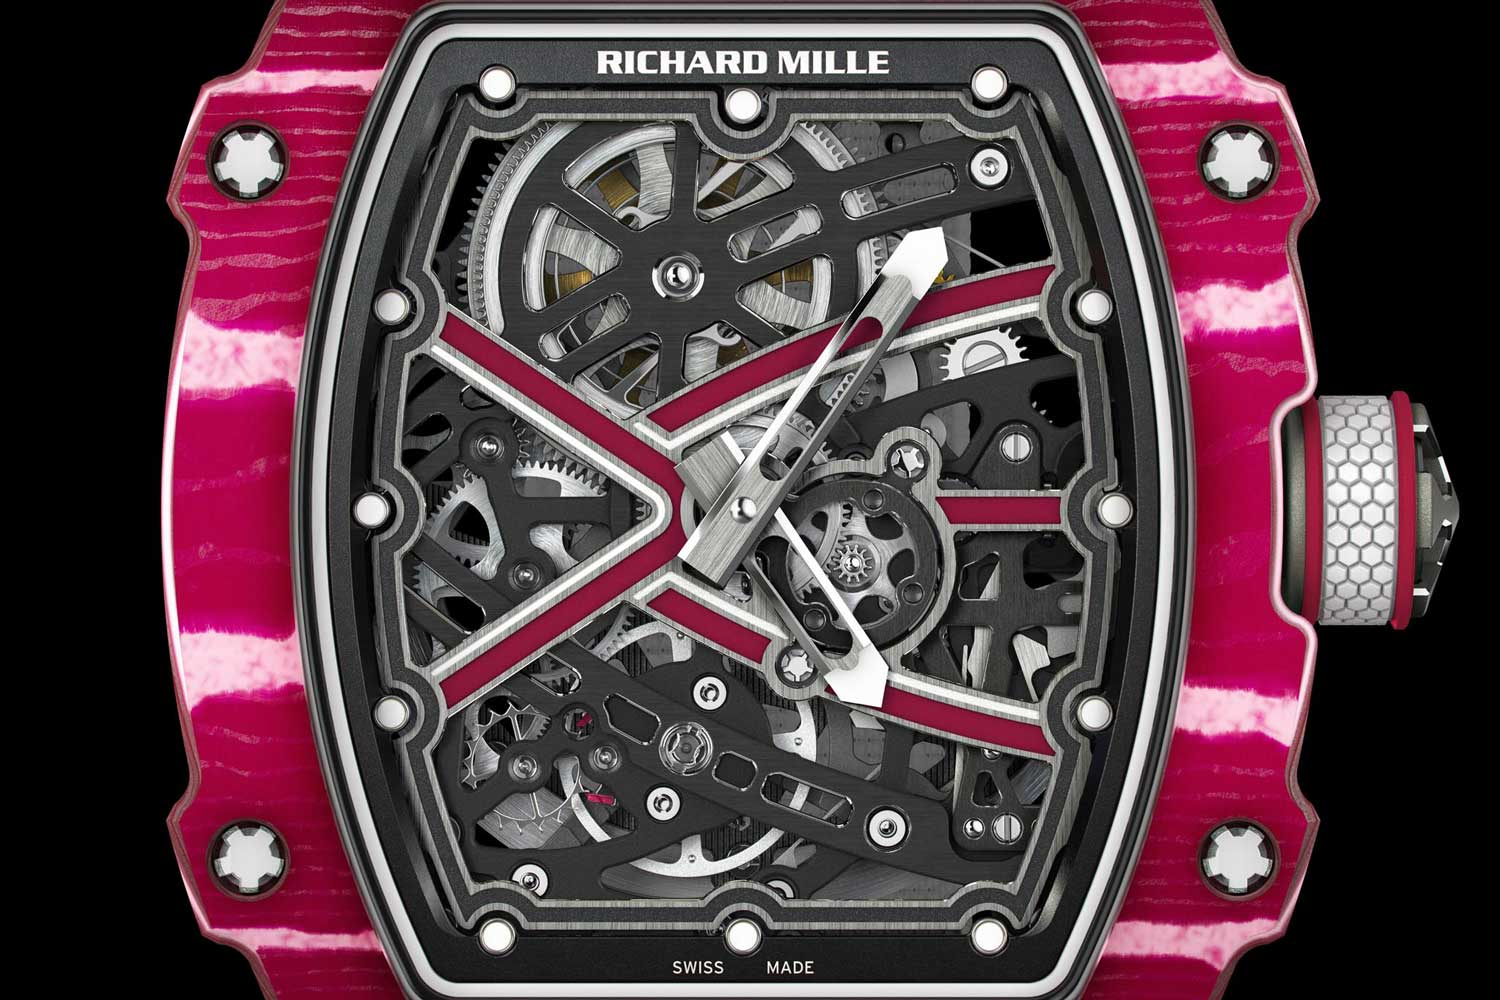 The RM 67-02's dial is integrated into the baseplate of the watch, you can see all the inner mechanical elements, including the escapement wheel at seven o'clock, the balance wheel just to the left of six o'clock, and the skeletonized barrel at 12 o'clock, which also allows you to gauge the state of wind of the mainspring inside